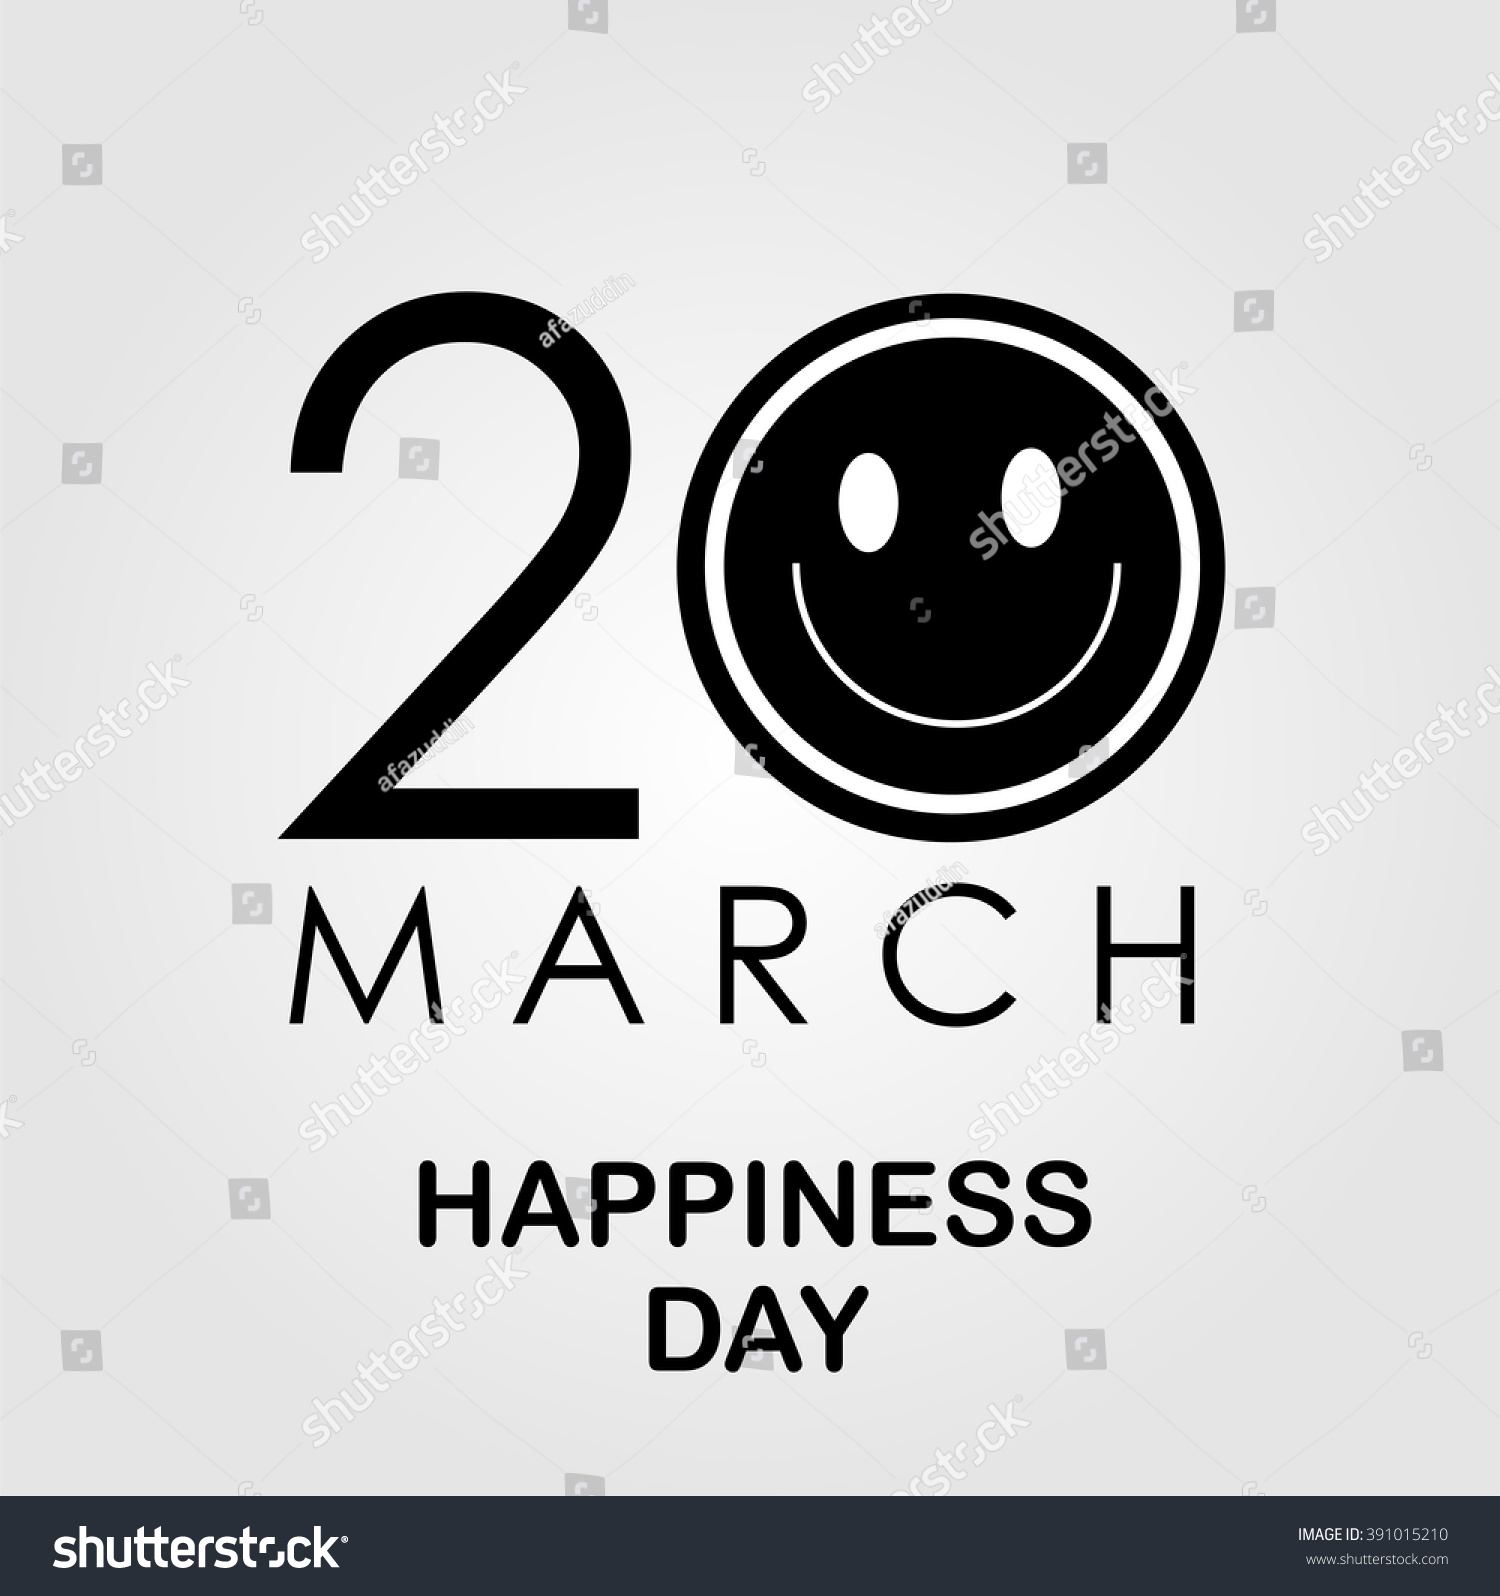 International day happiness commemorative day march stock vector international day of happiness commemorative day march 20 biocorpaavc